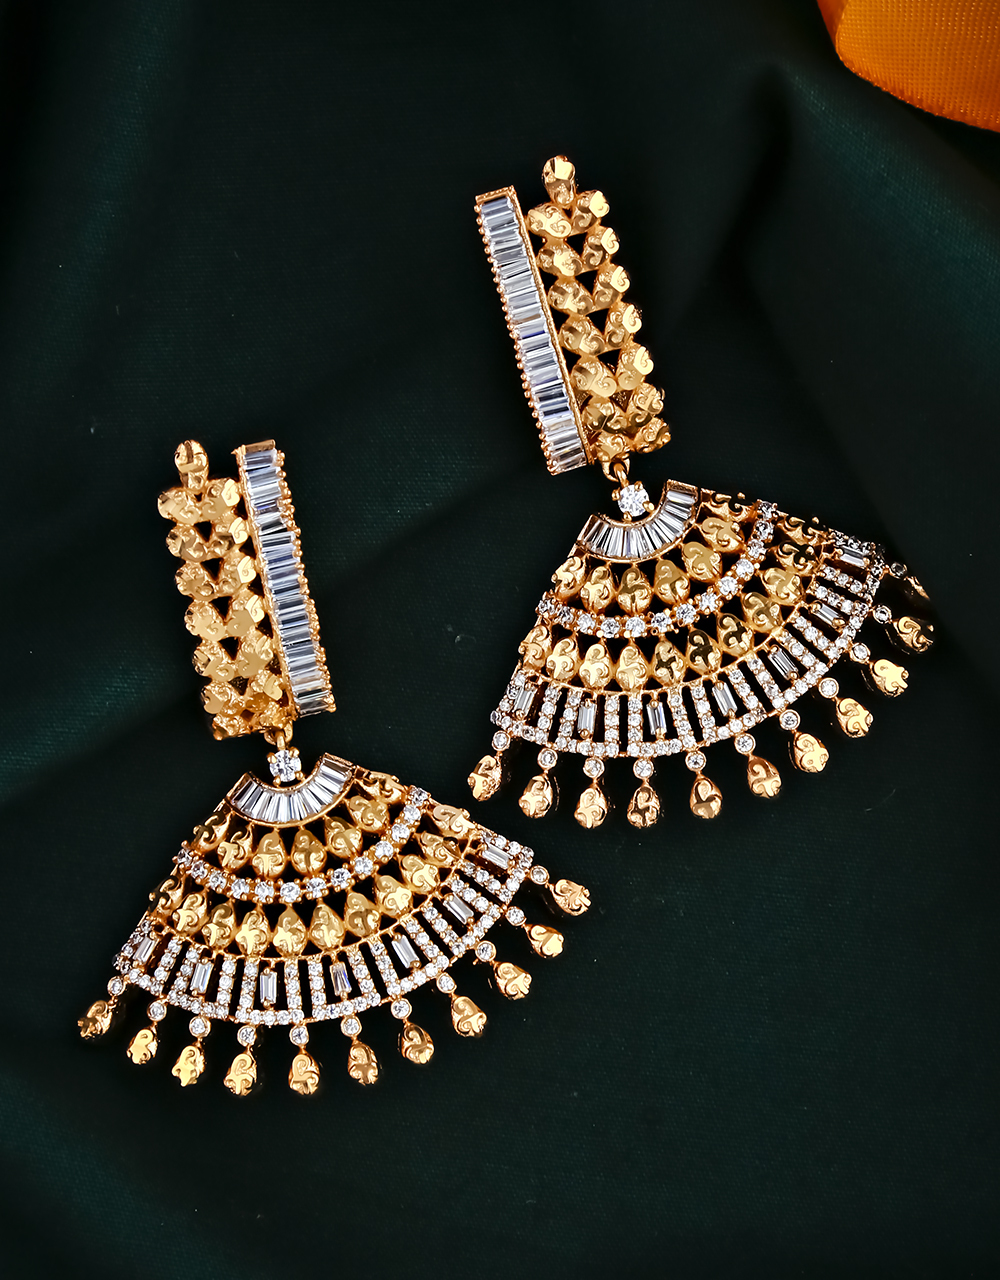 Rose Gold Finished Stylish Pair of American Diamond Studded Earrings for Women